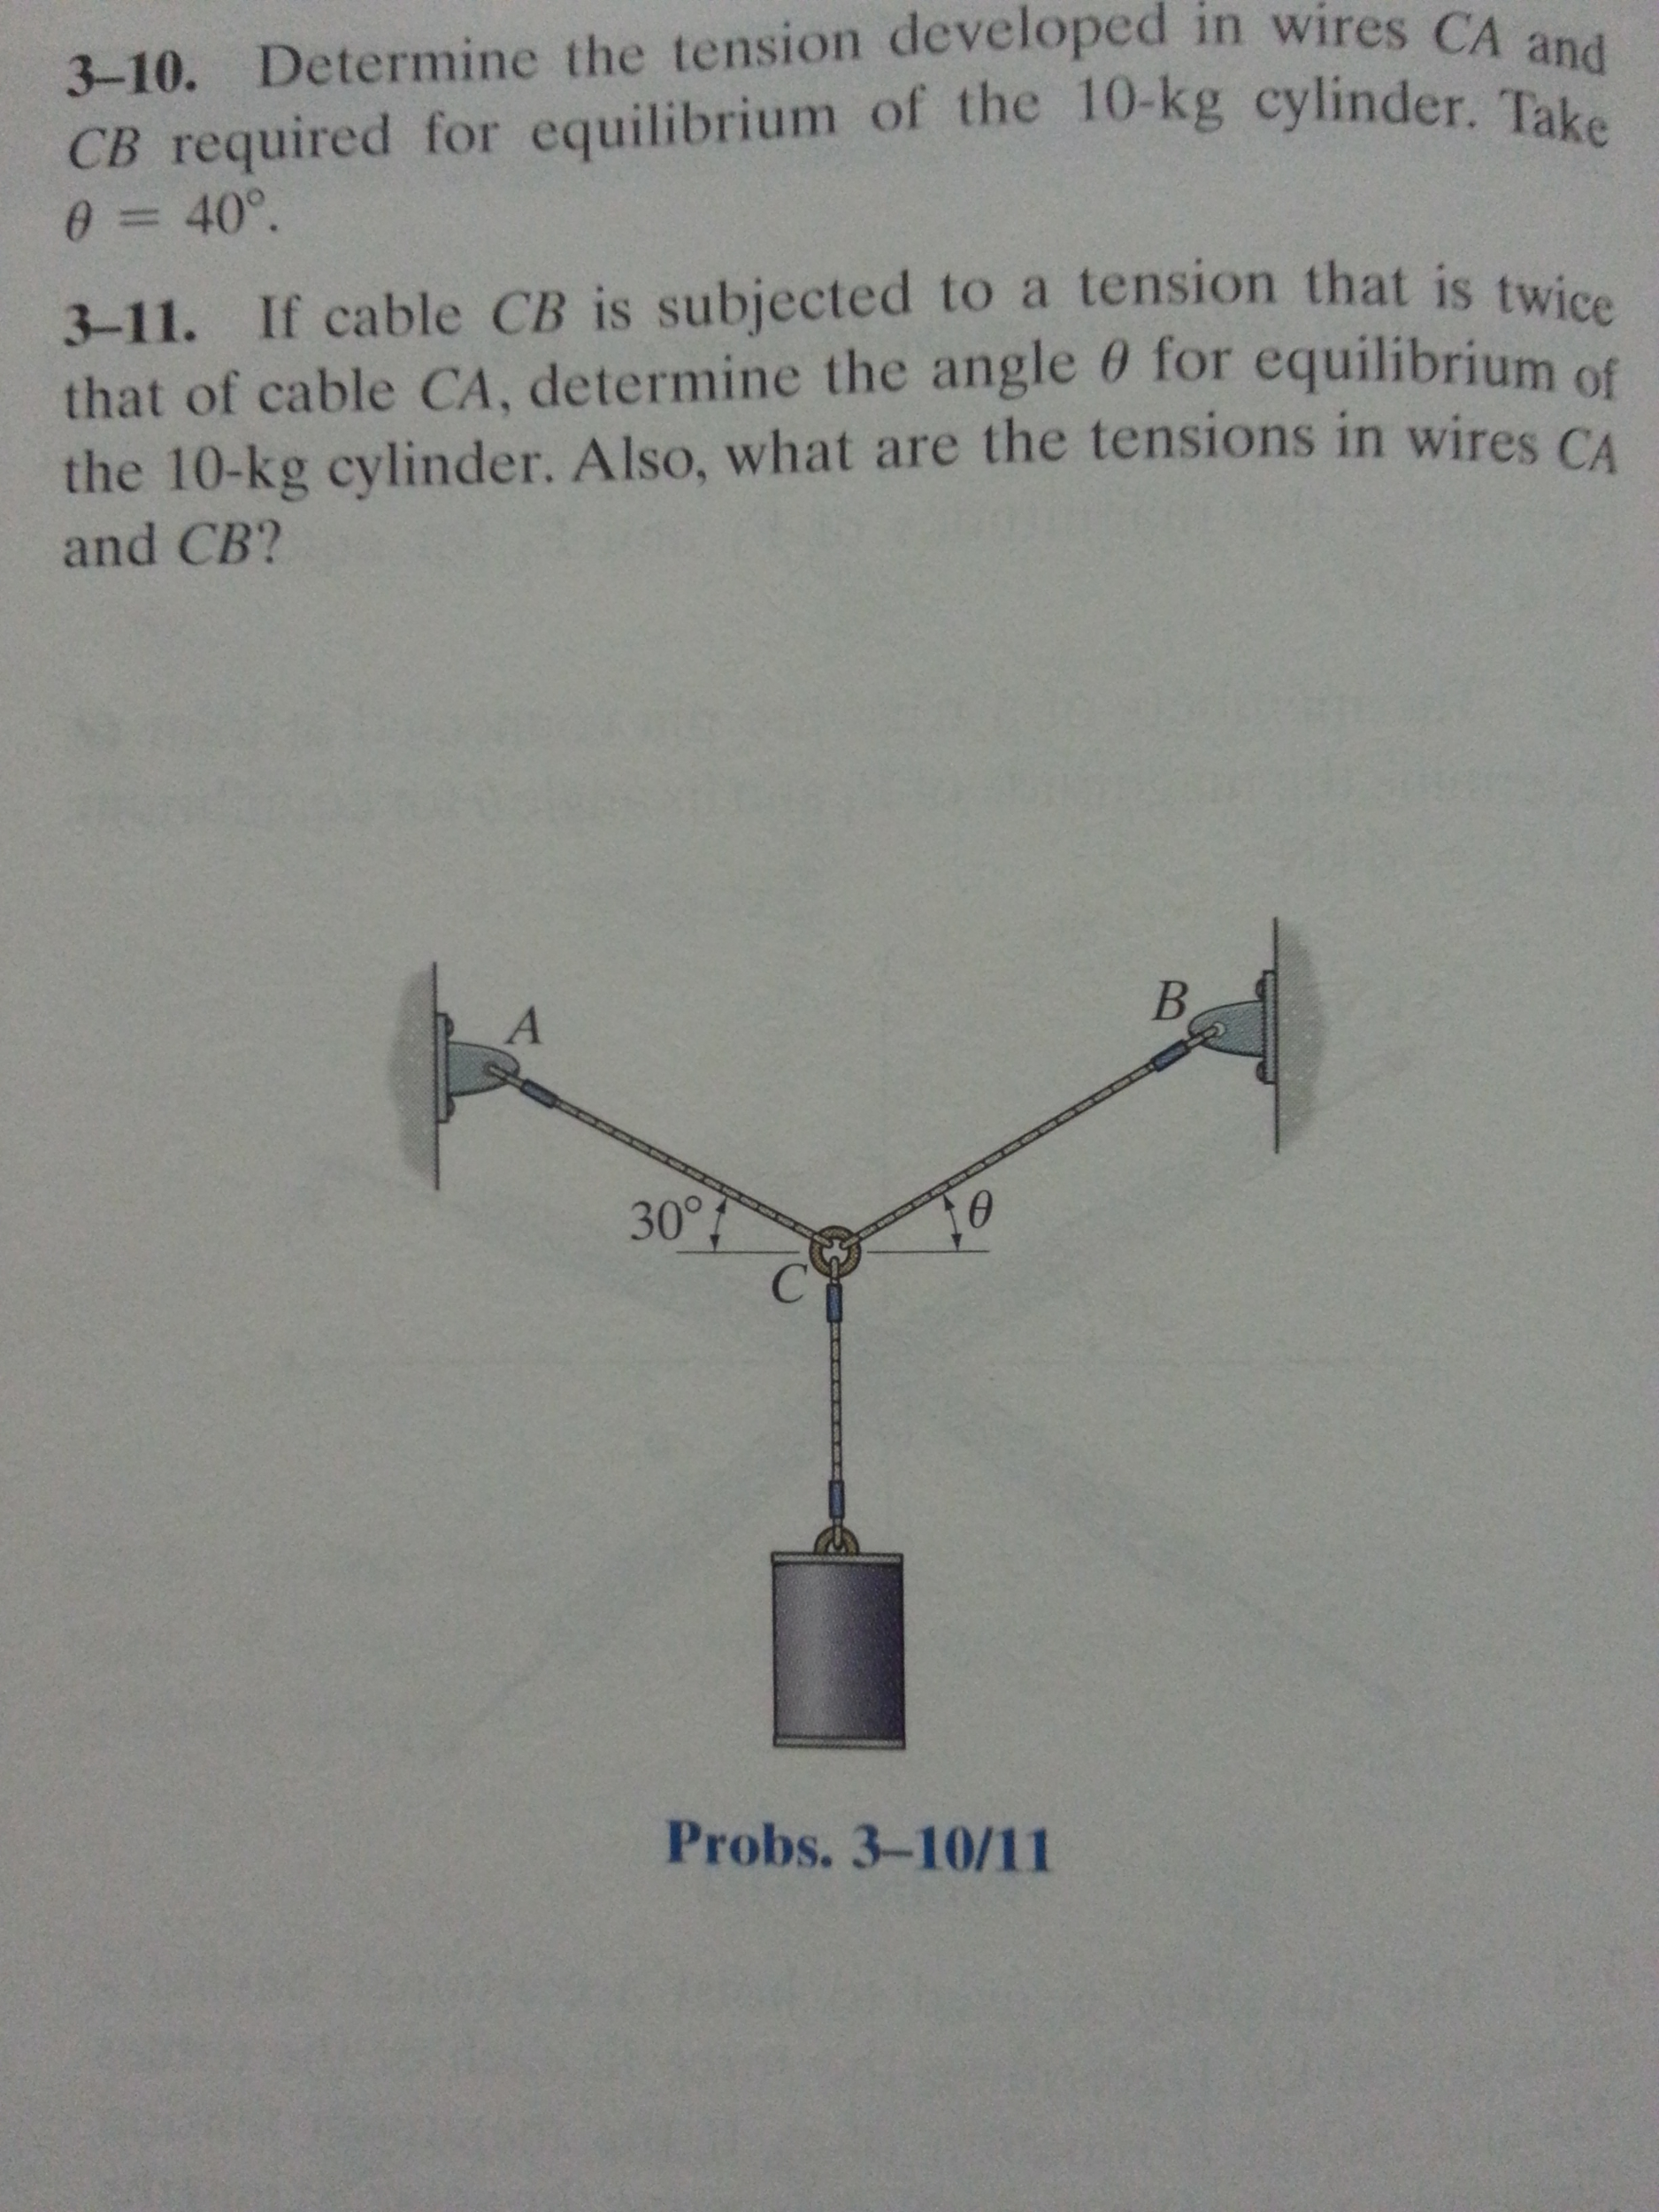 Determine the tension developed in wires CA and CB